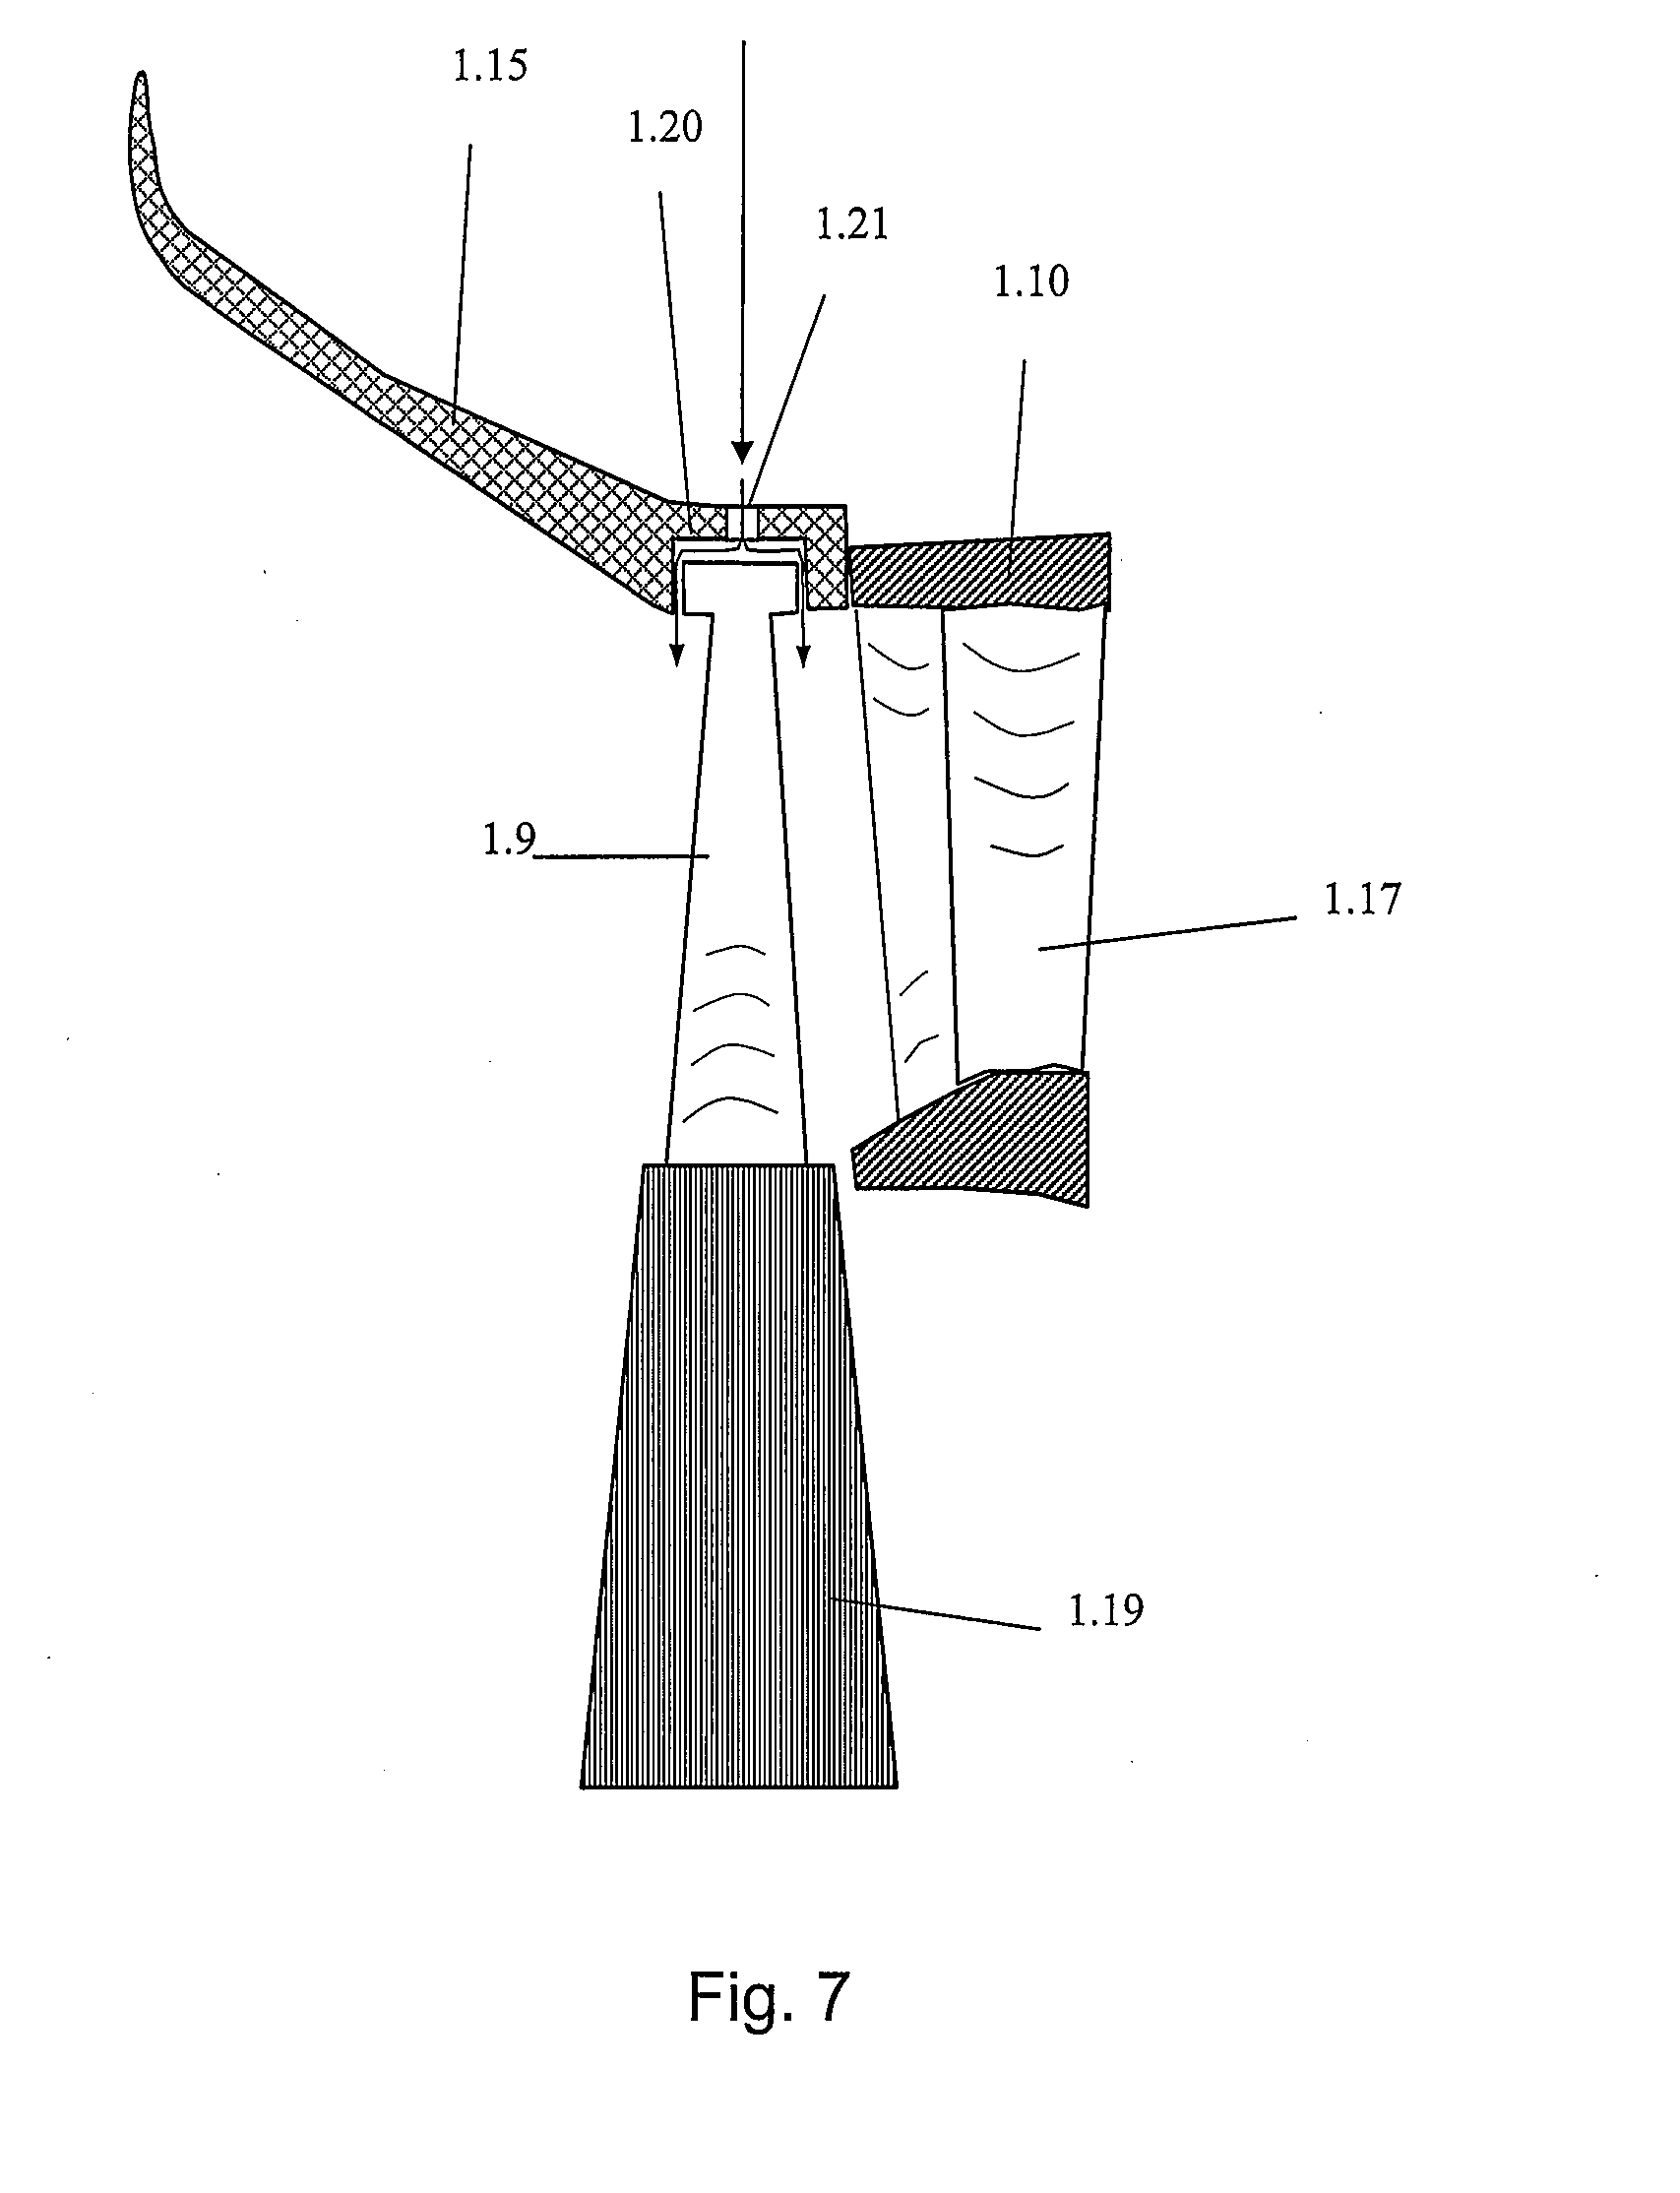 Outstanding Patent Us20080219842 Turbine Part Of A Turbocompressor And A Hairstyles For Men Maxibearus